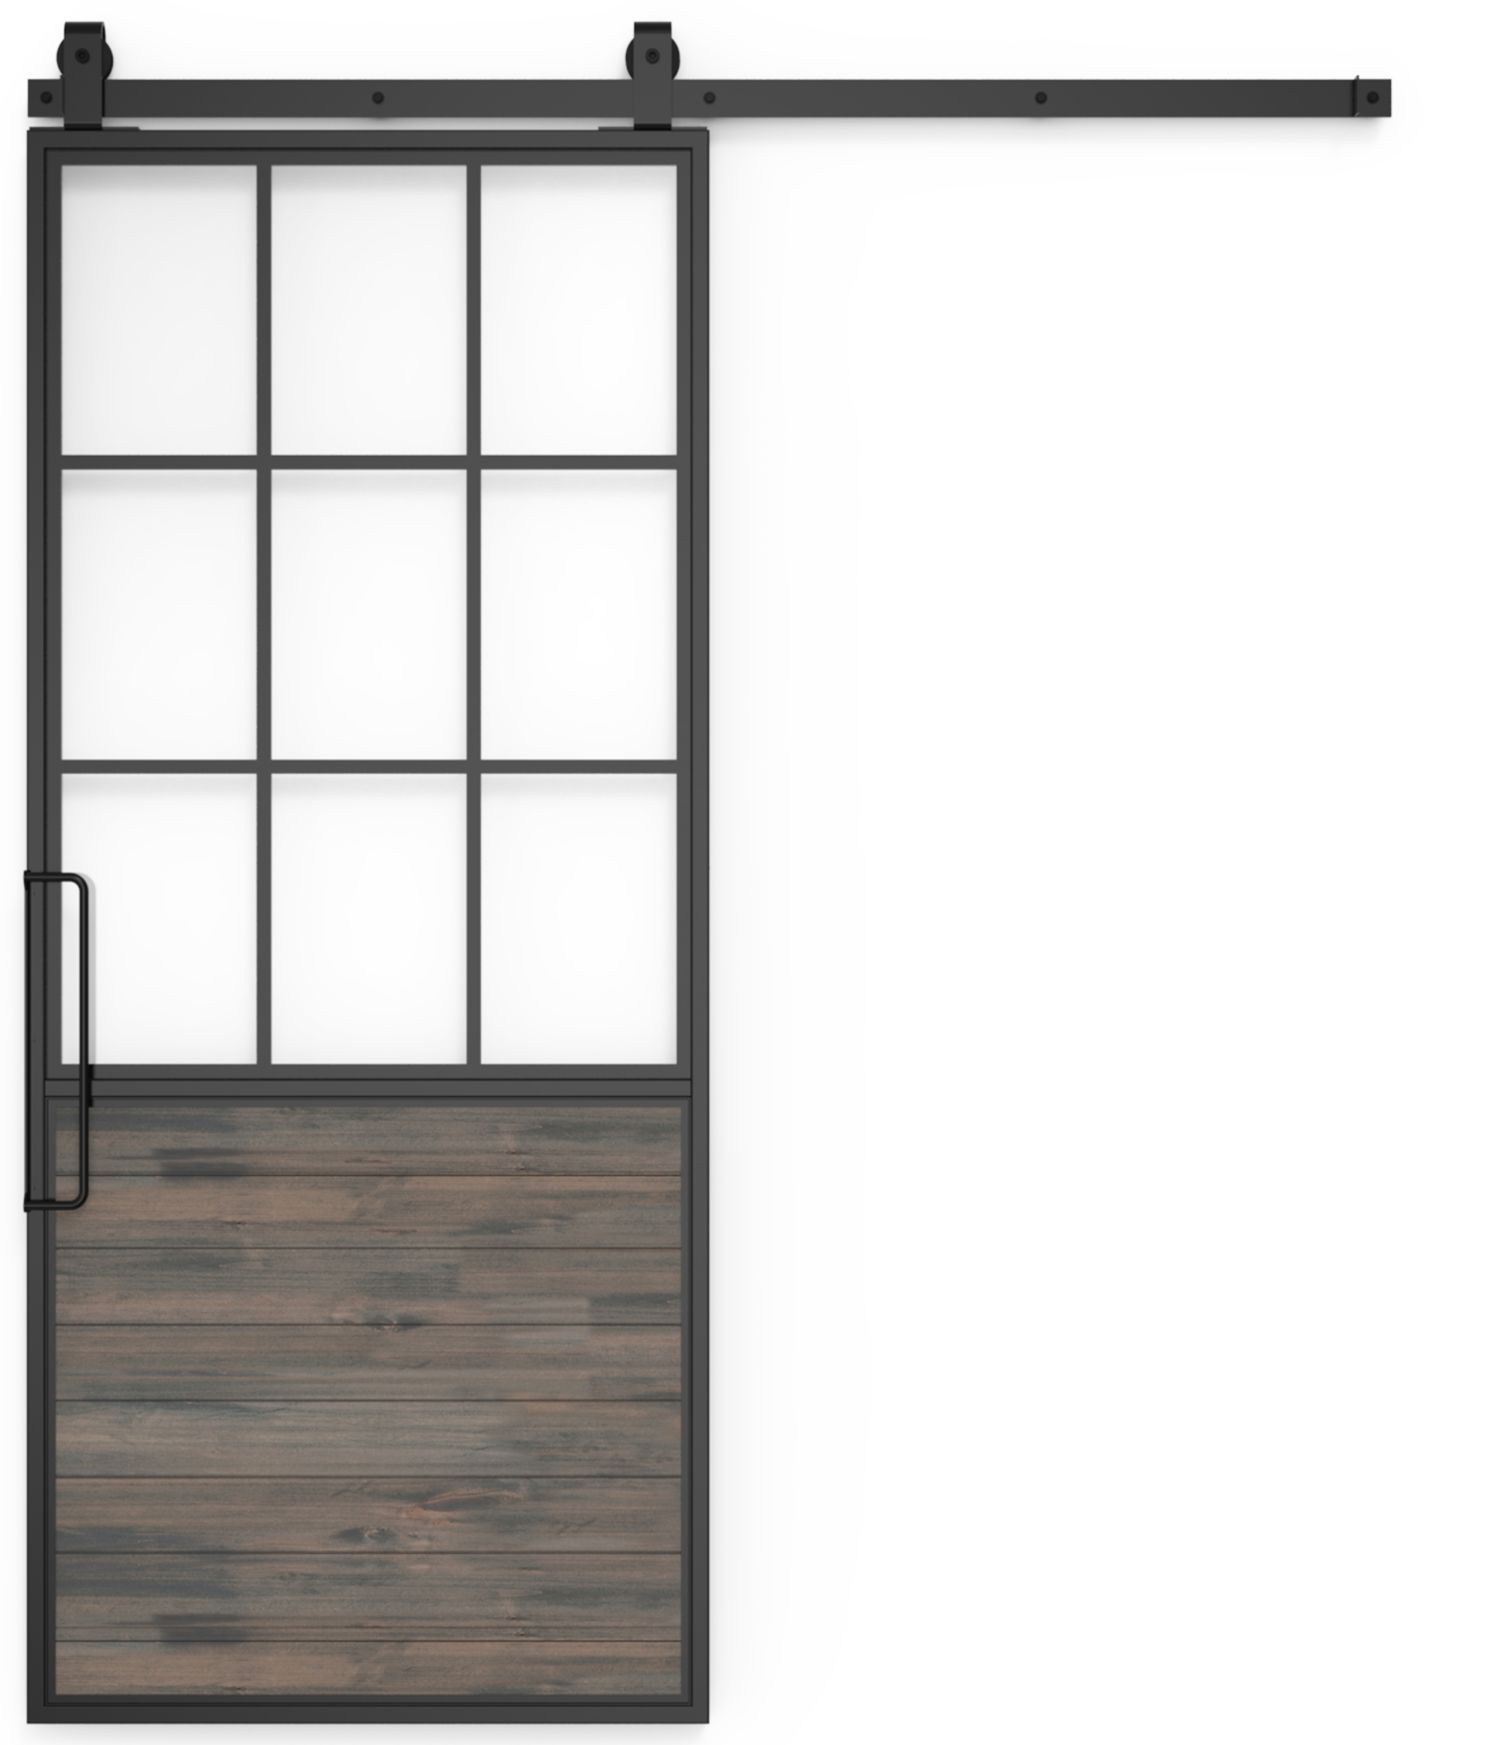 Mountain French Barn Door Half Glass Rustica Hardware Interior Sliding Barn Doors Interior Barn Doors Barn Door